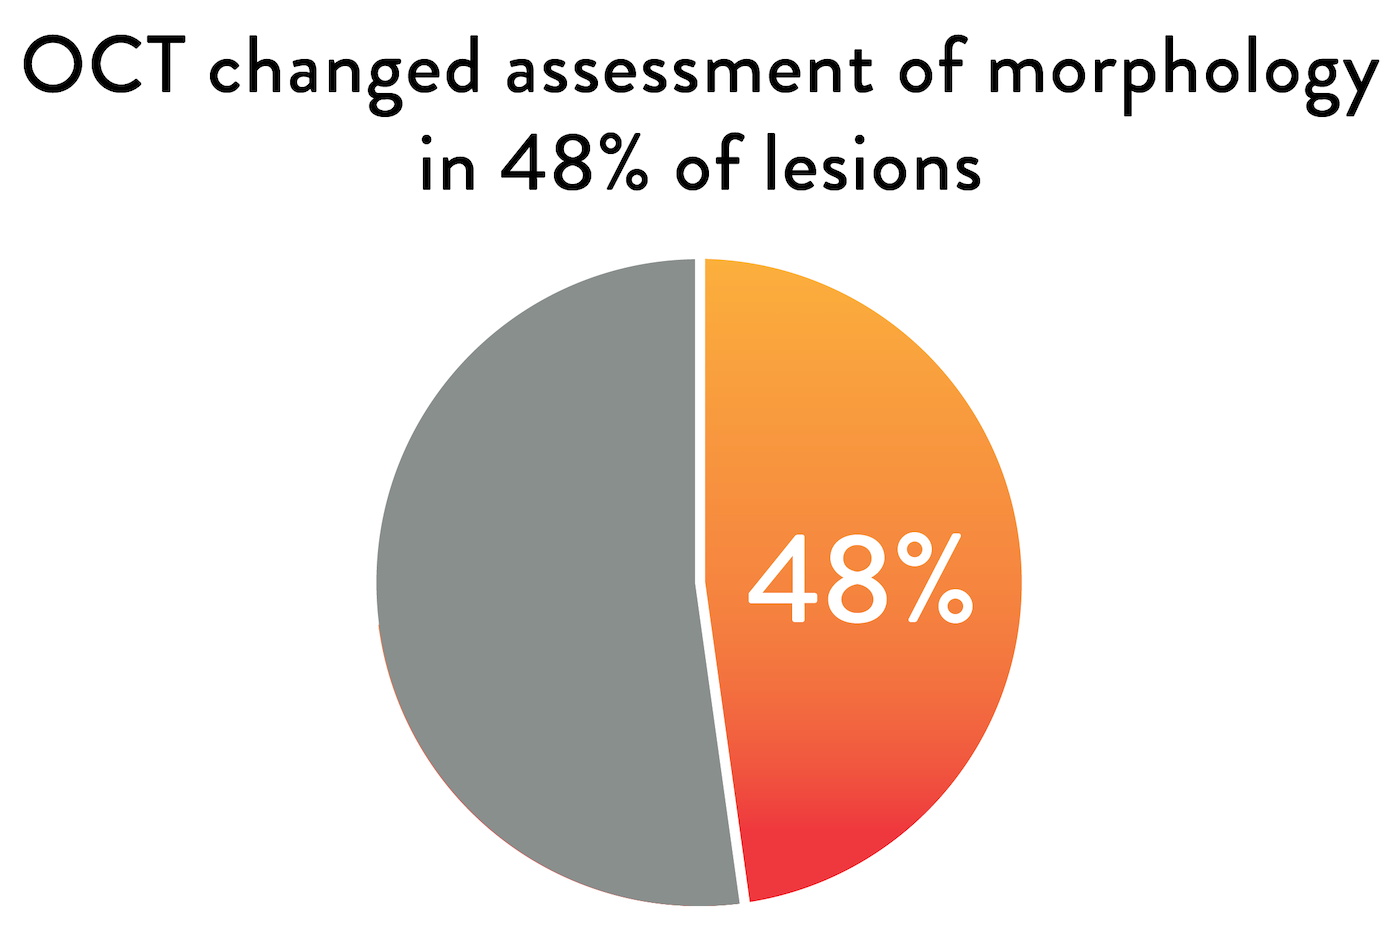 OCT changed assessment of morphology in 48% of lesions